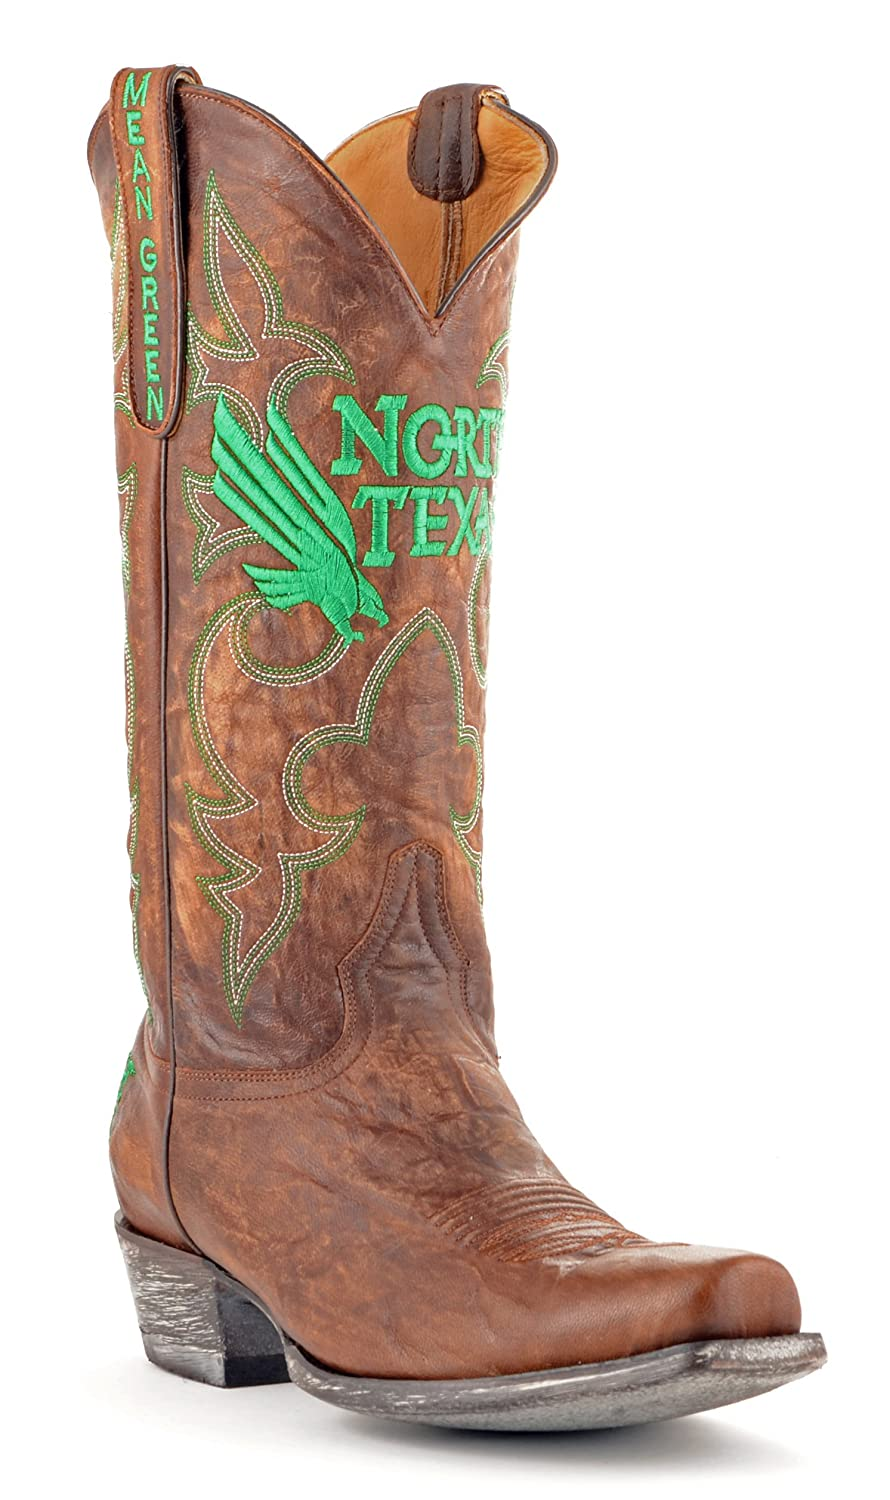 NCAA North Texas Mean Green Men's Board Room Style Boots